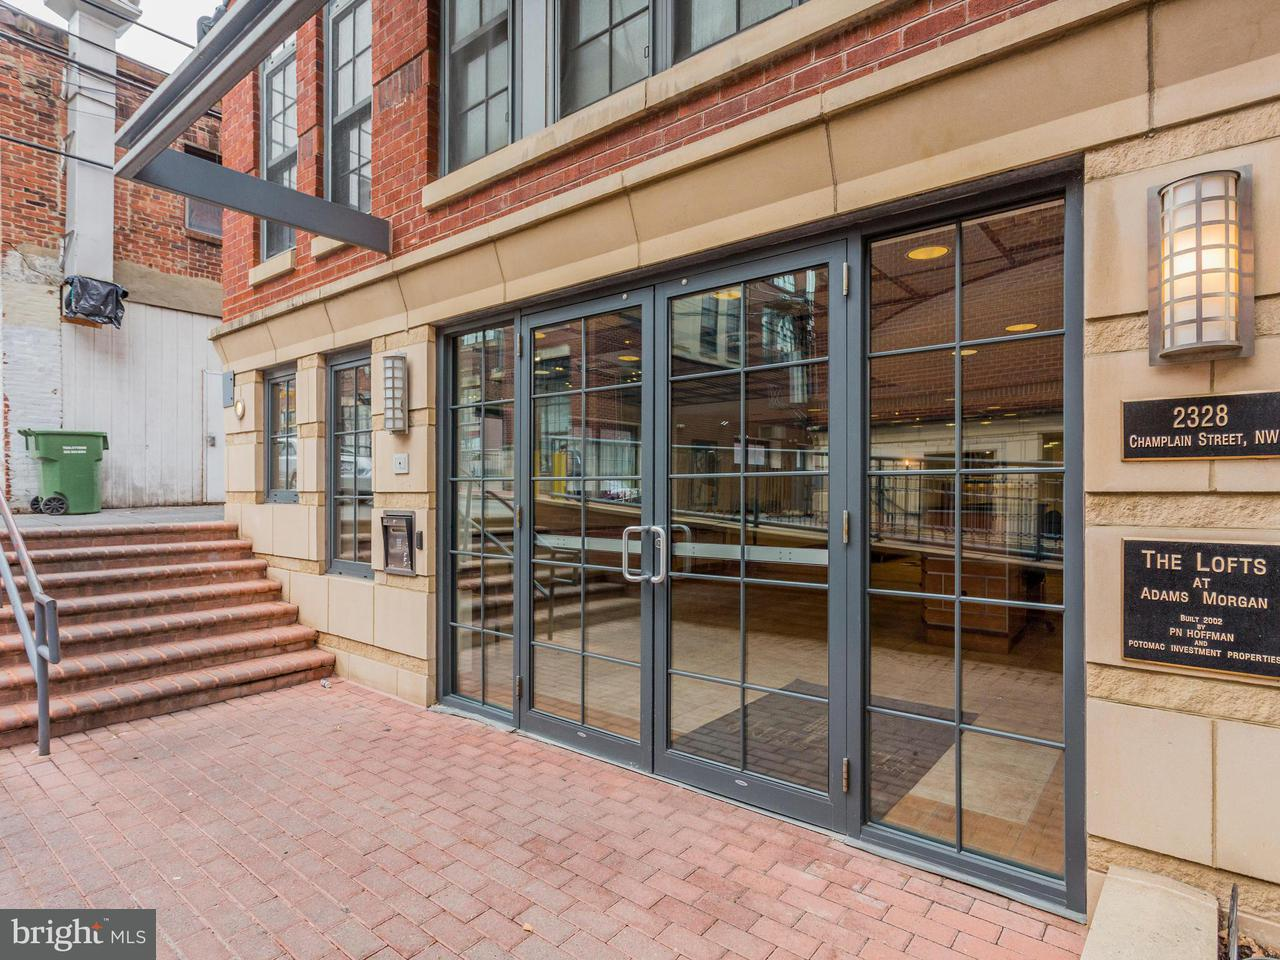 Additional photo for property listing at 2328 Champlain St NW #202  Washington, District Of Columbia 20009 United States